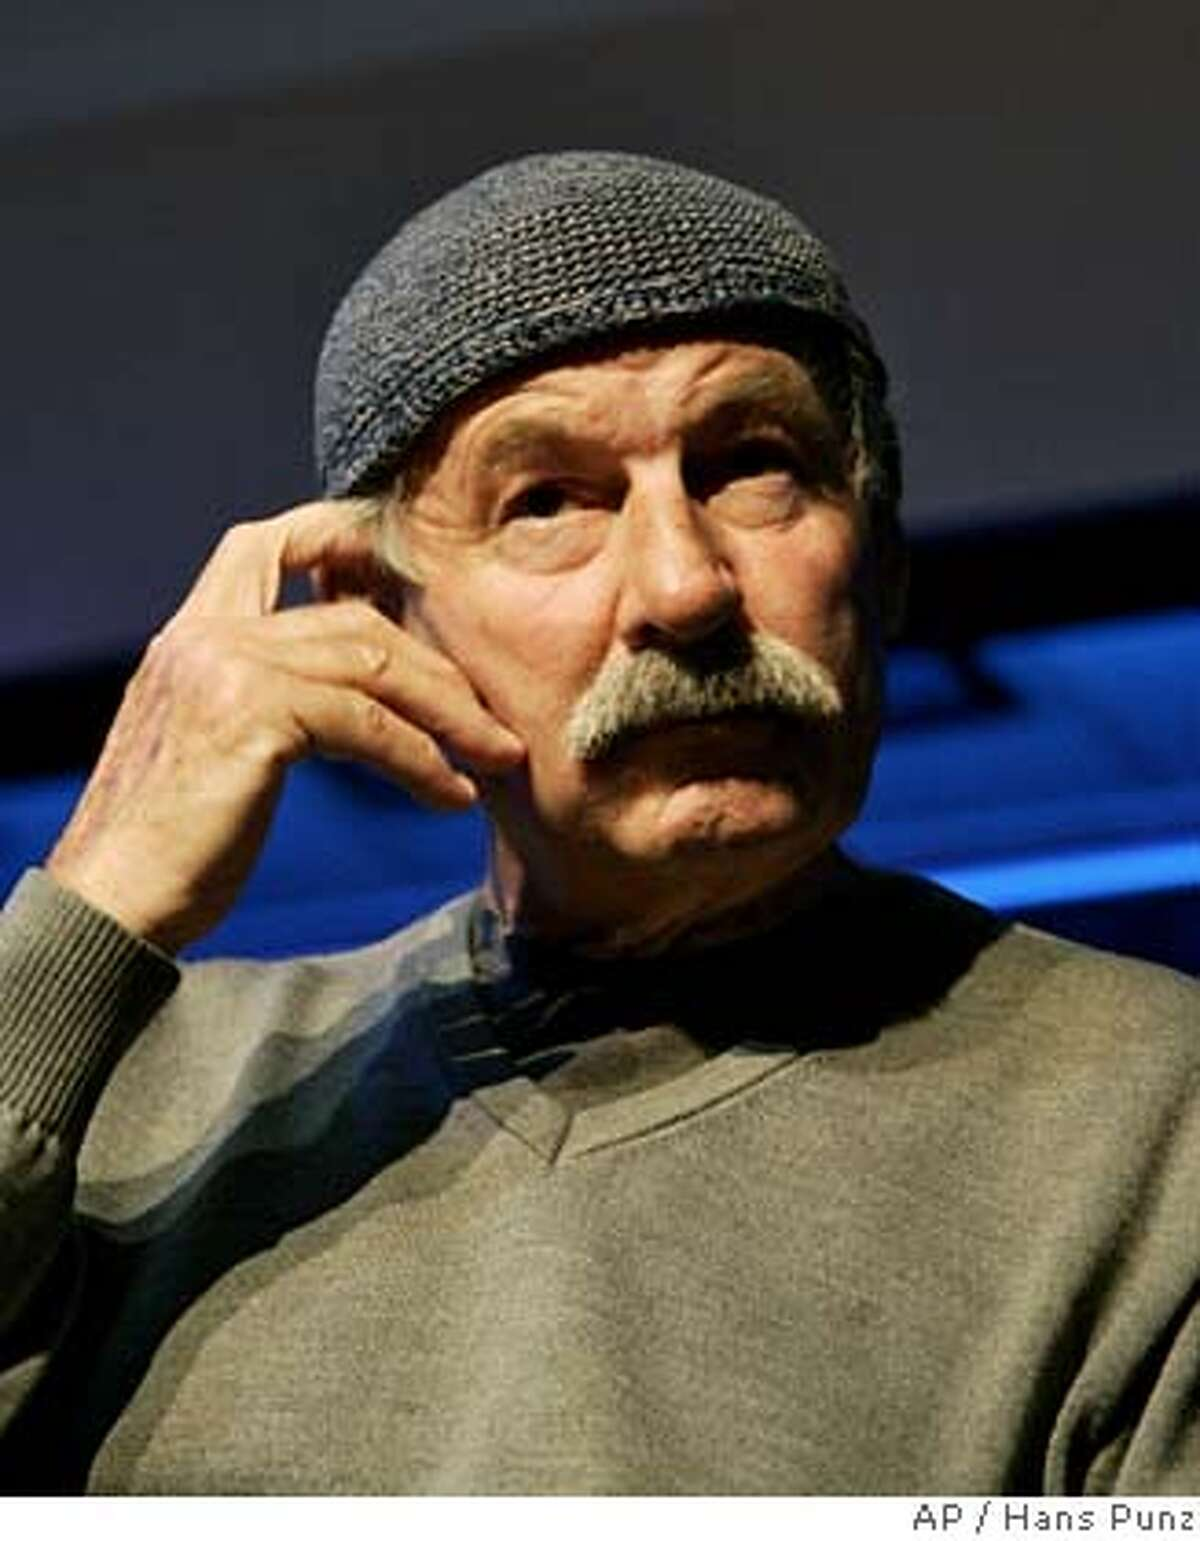 ** FILE ** Austrian born composer and Jazz musician Joe Zawinul listens to a journalist's question during a press conference in Vienna, on Monday, Oct. 2, 2006. Jazz legend Zawinul, who soared to fame in the 1950s as one of the world's greatest jazz pianists and both performed and recorded with Miles Davis, has died at a Viennese hospital at the age of 75, on Tuesday, Sept. 11, 2007. (AP Photo/Hans Punz, file) OCT. 2, 2006 FILE PHOTO